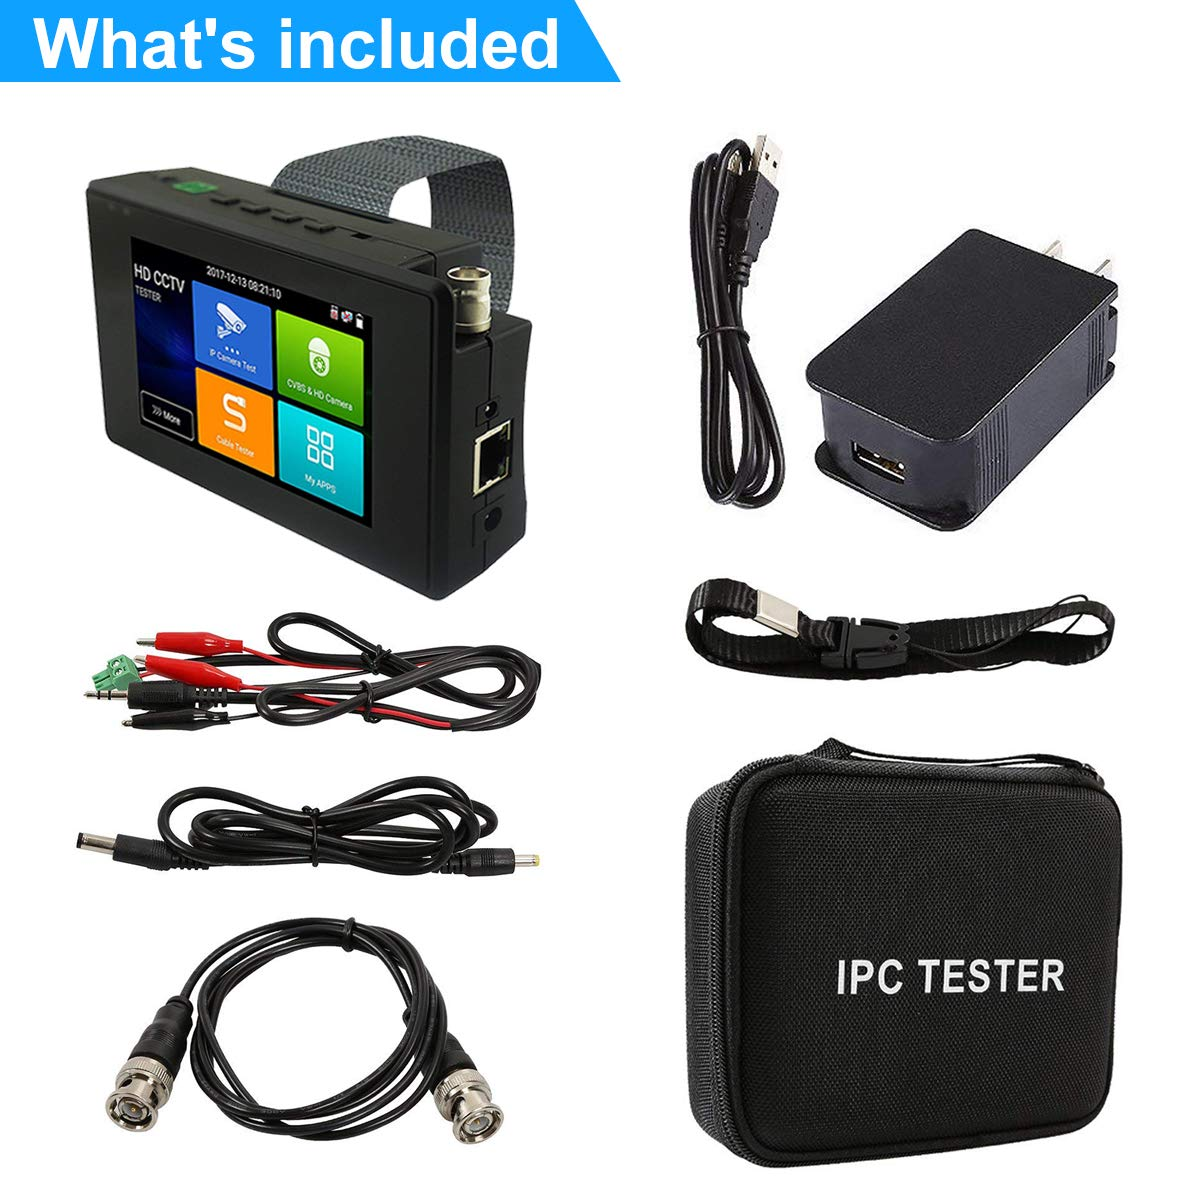 4K 5 in 1 IP Camera Tester, IP/TVI/CVI/AHD/CVBS Camera Monitor Test, 4 inch Monitor Touch Screen, POE/IP Discovery/Rapid ONVIF/Camera Test Report, 1800ADH-Plus CCTV Tester by AP Security (Image #6)